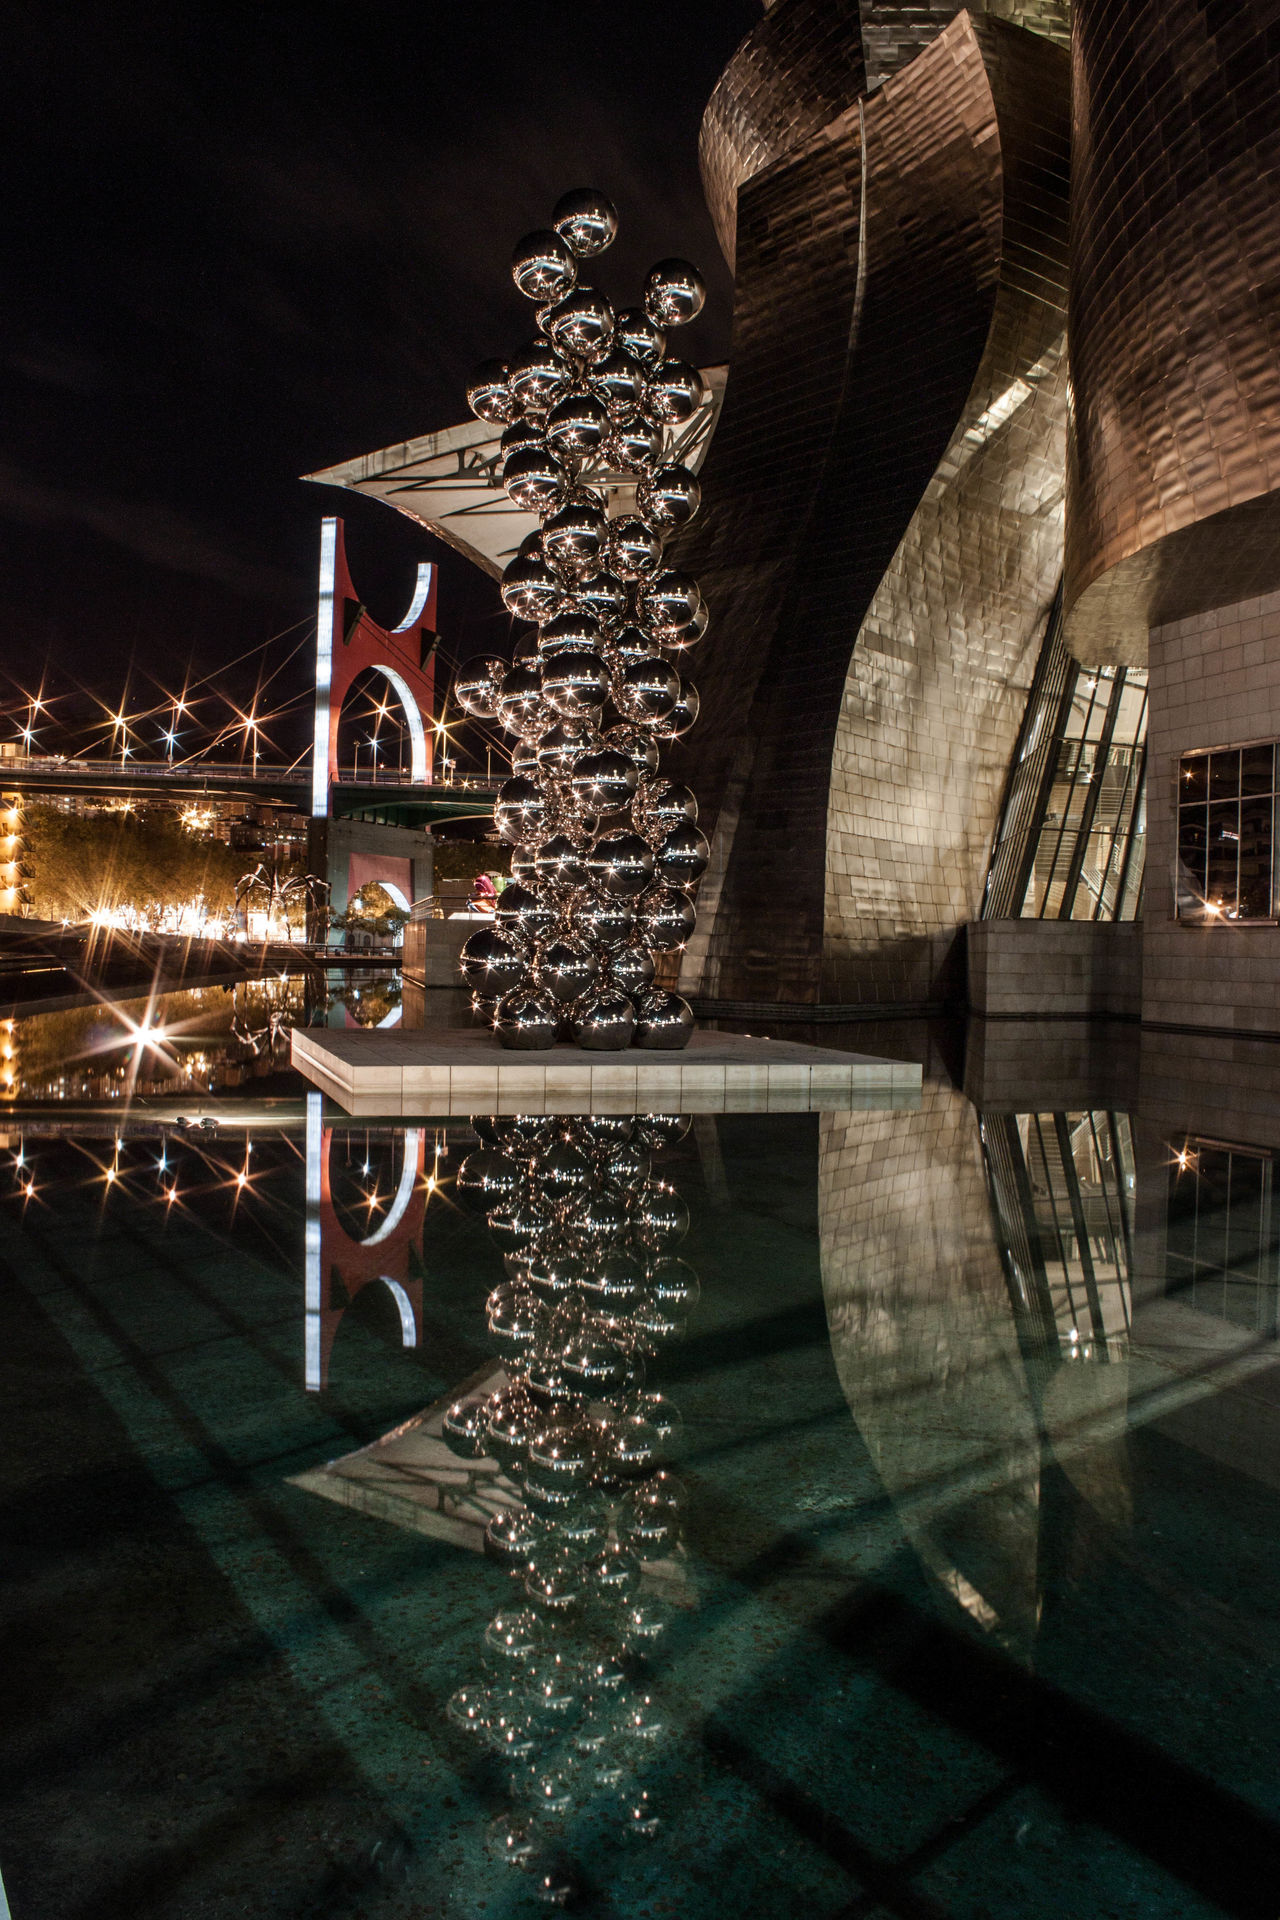 Architecture Building Exterior Built Structure Guggenheim Guggenheim Bilbao Illuminated Night No People Outdoors Reflection Water Euskaditurismo Euskadibasquecountry Euskadigrafias Bizkaia Bizkaiaturismo Bilbaoarchitecture Bilbaocentro Bilbao City Modern Reflection Photography Reflection In The Water Reflects Bubbles